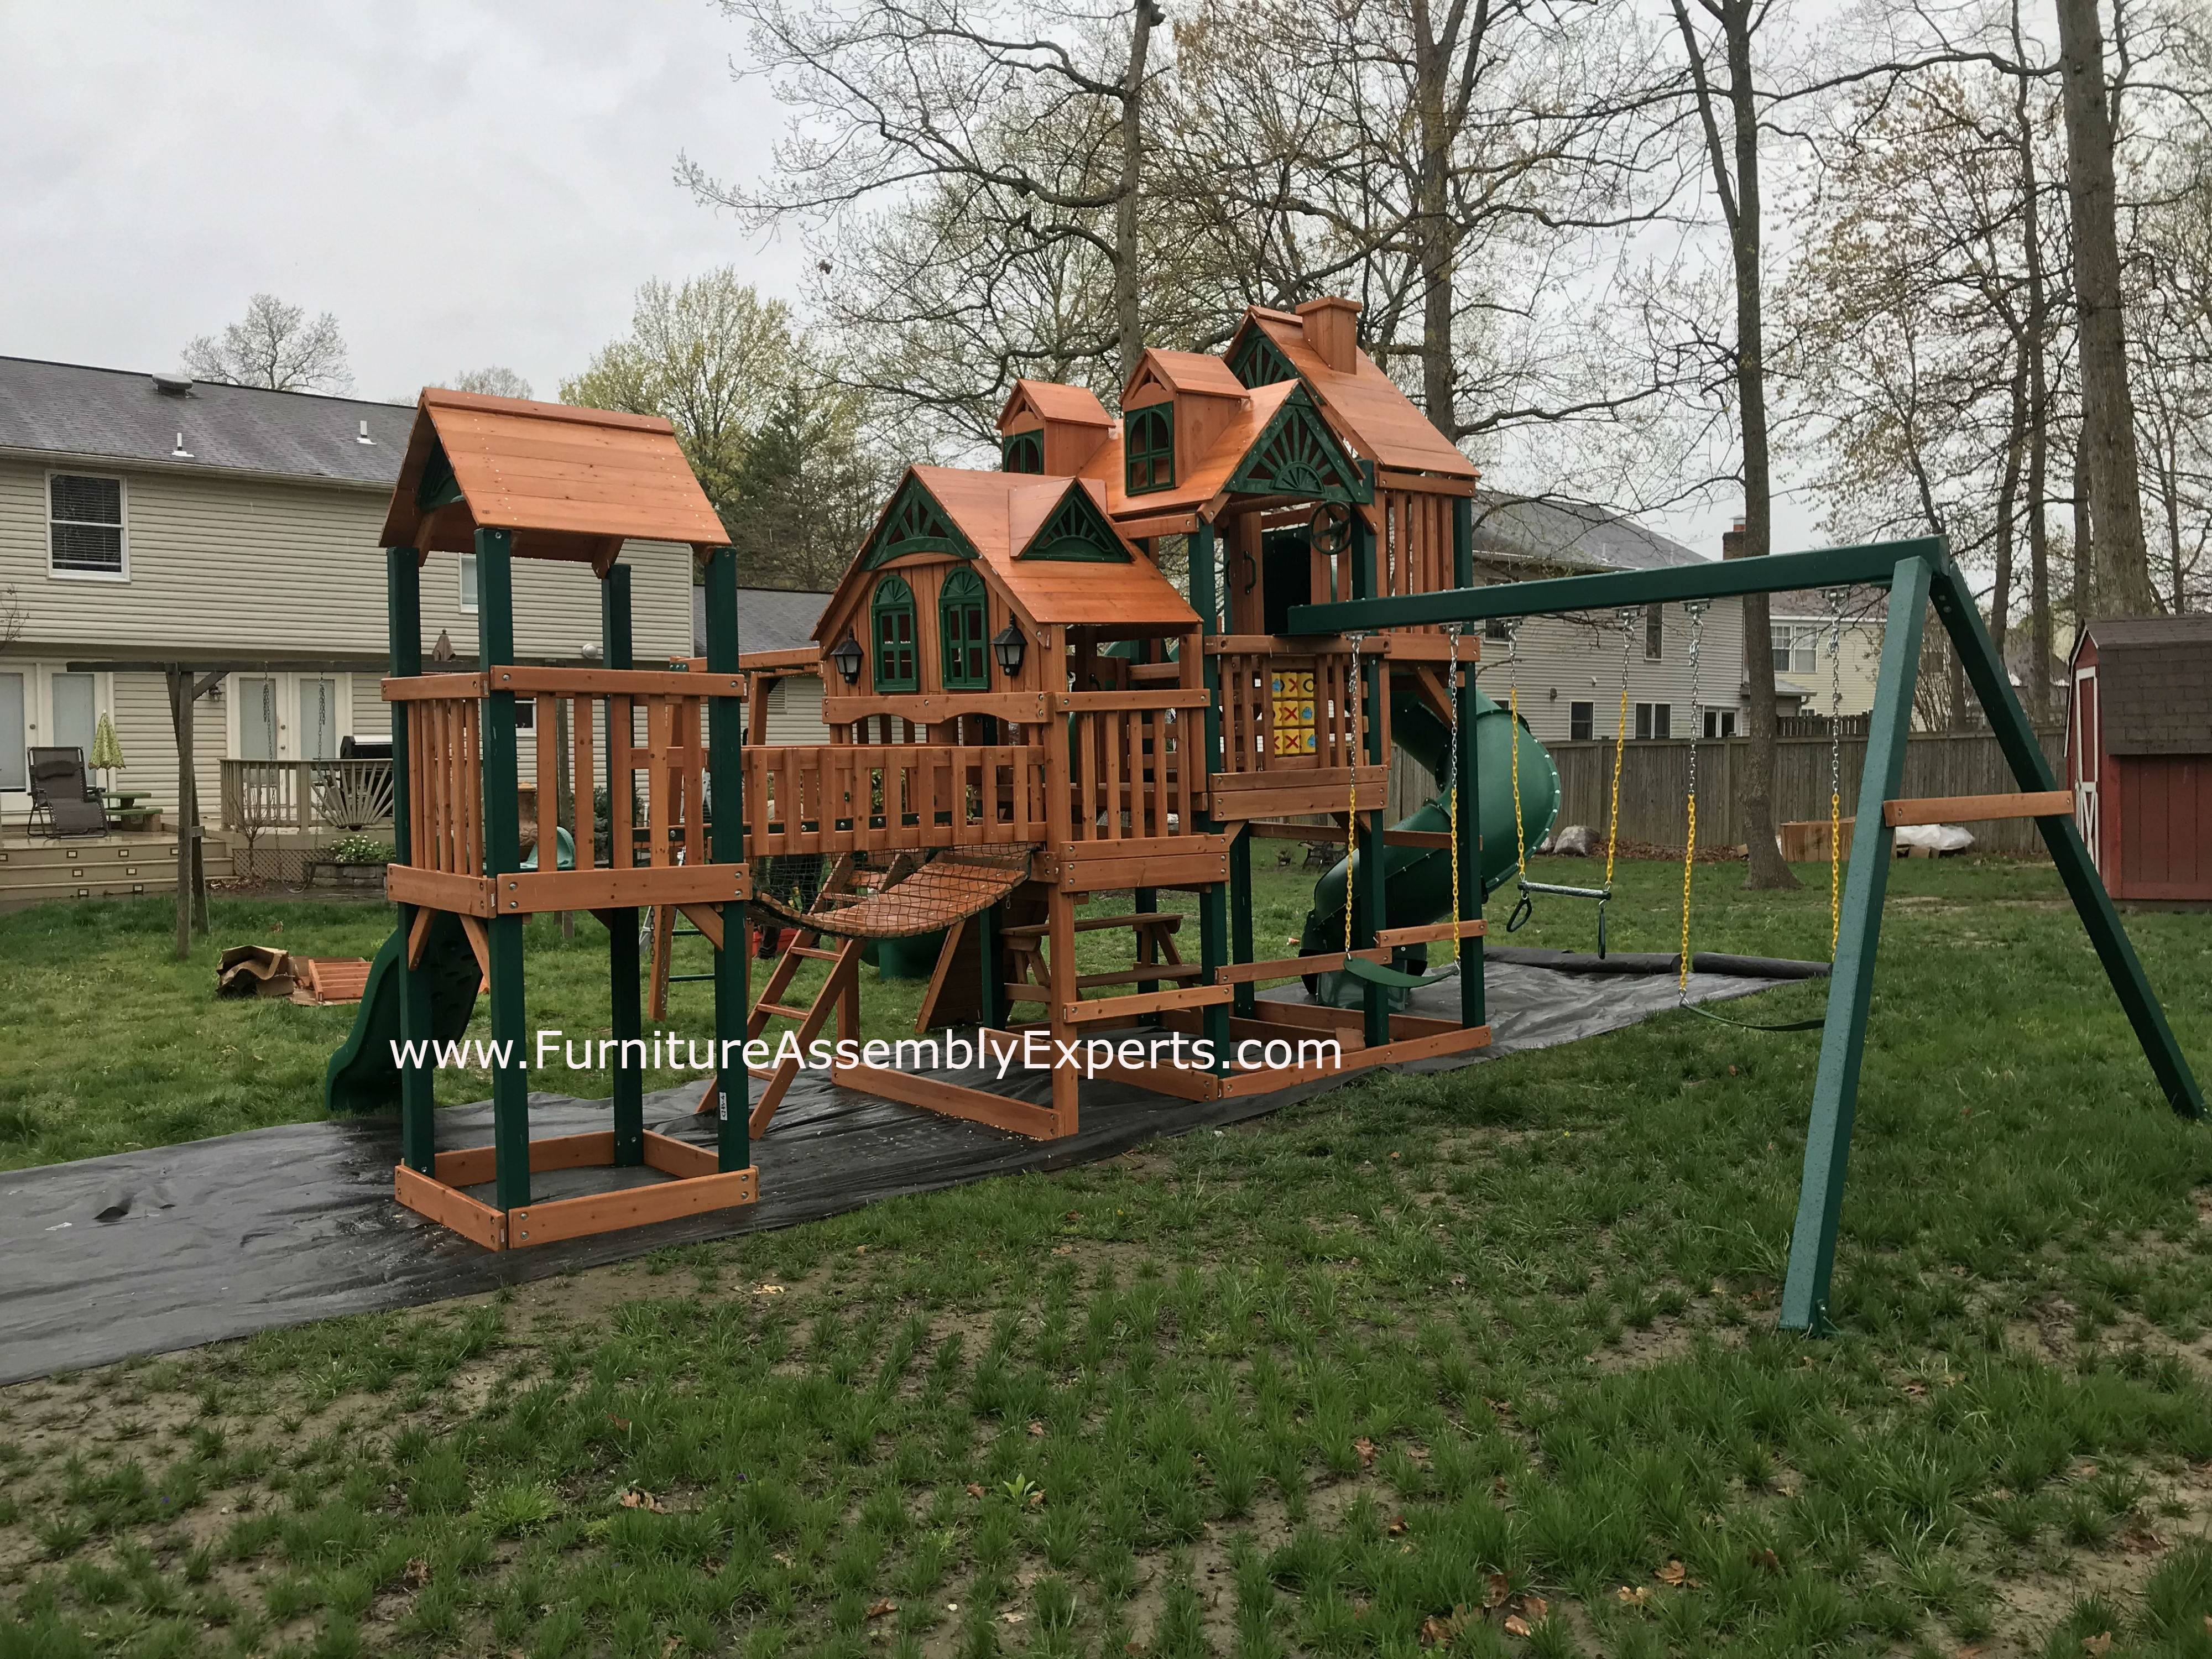 gorilla empire extreme playset installation in Maryland